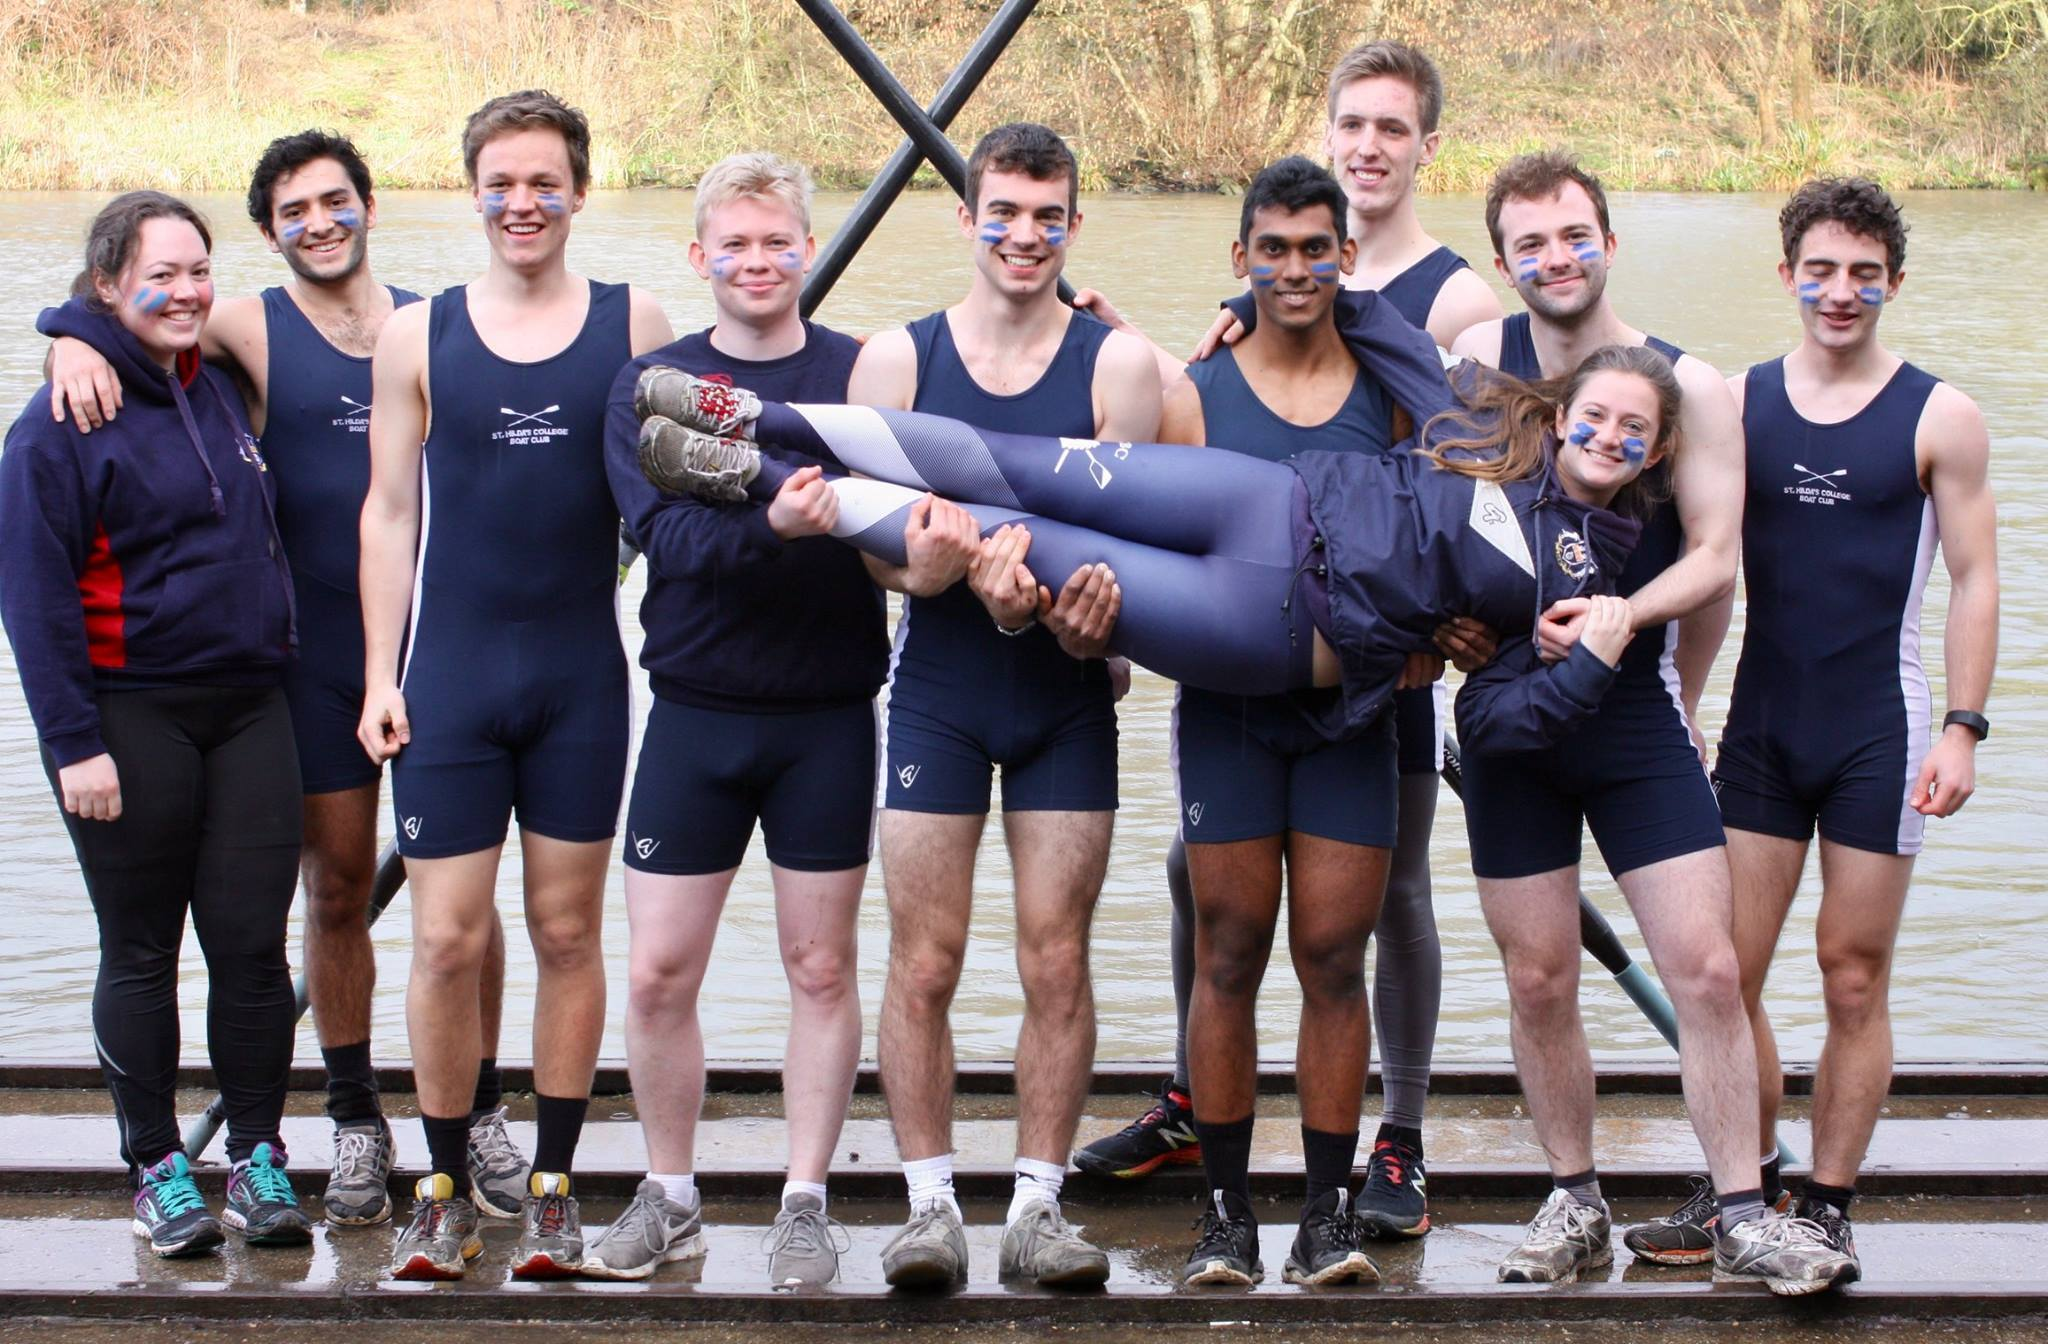 St Hilda's men's boat crew at Summer Eights in 2015